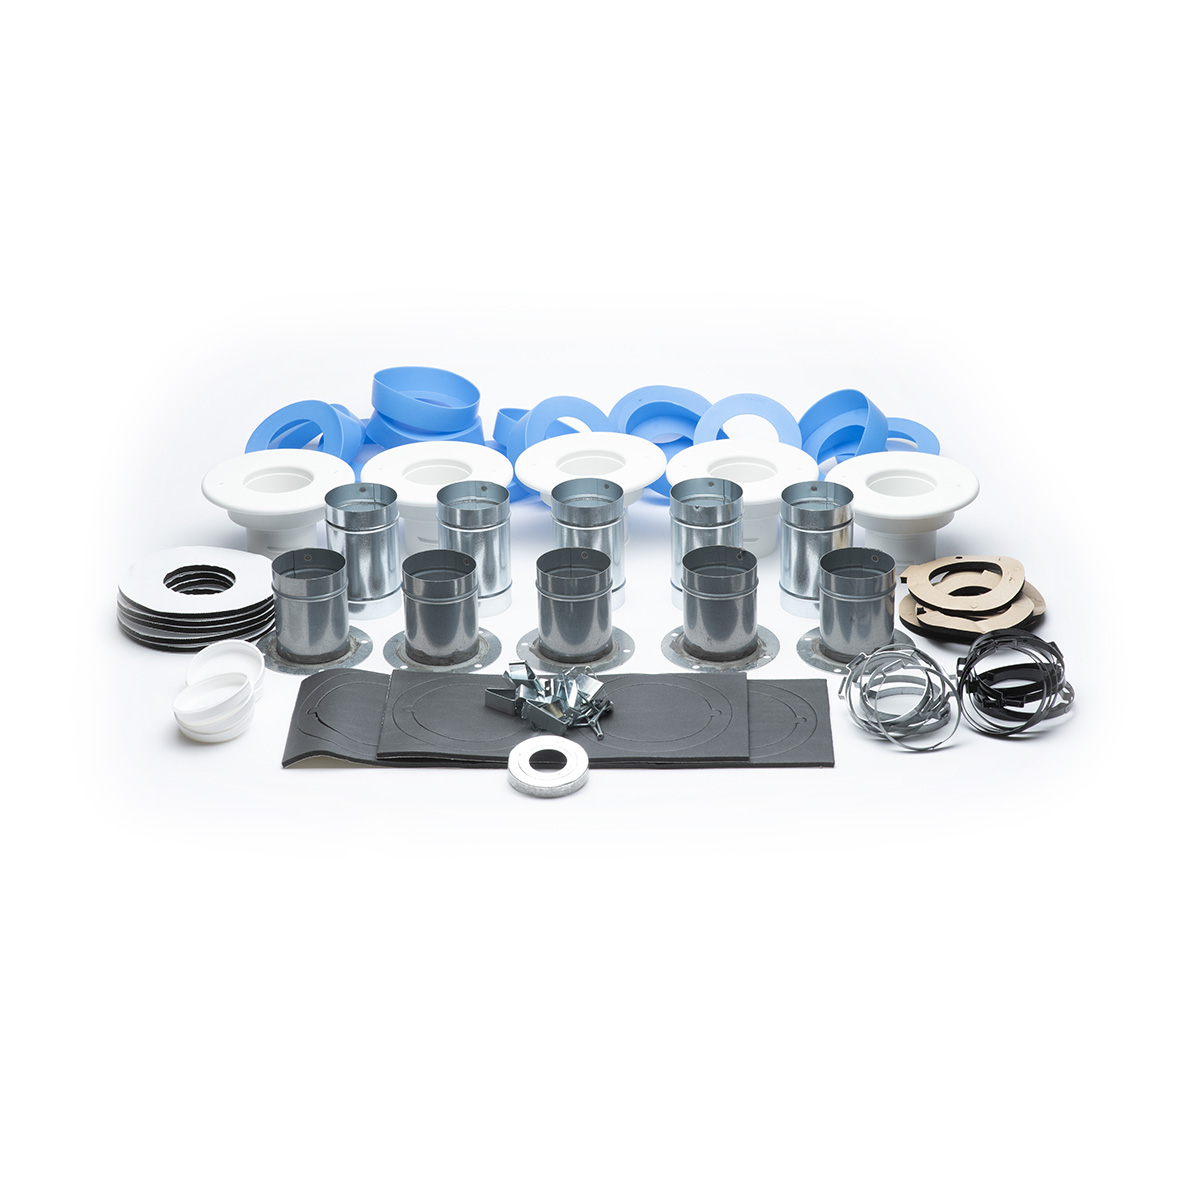 "Fittings Kit, 2.5""dia x Flat Metal Duct, 5/bx"